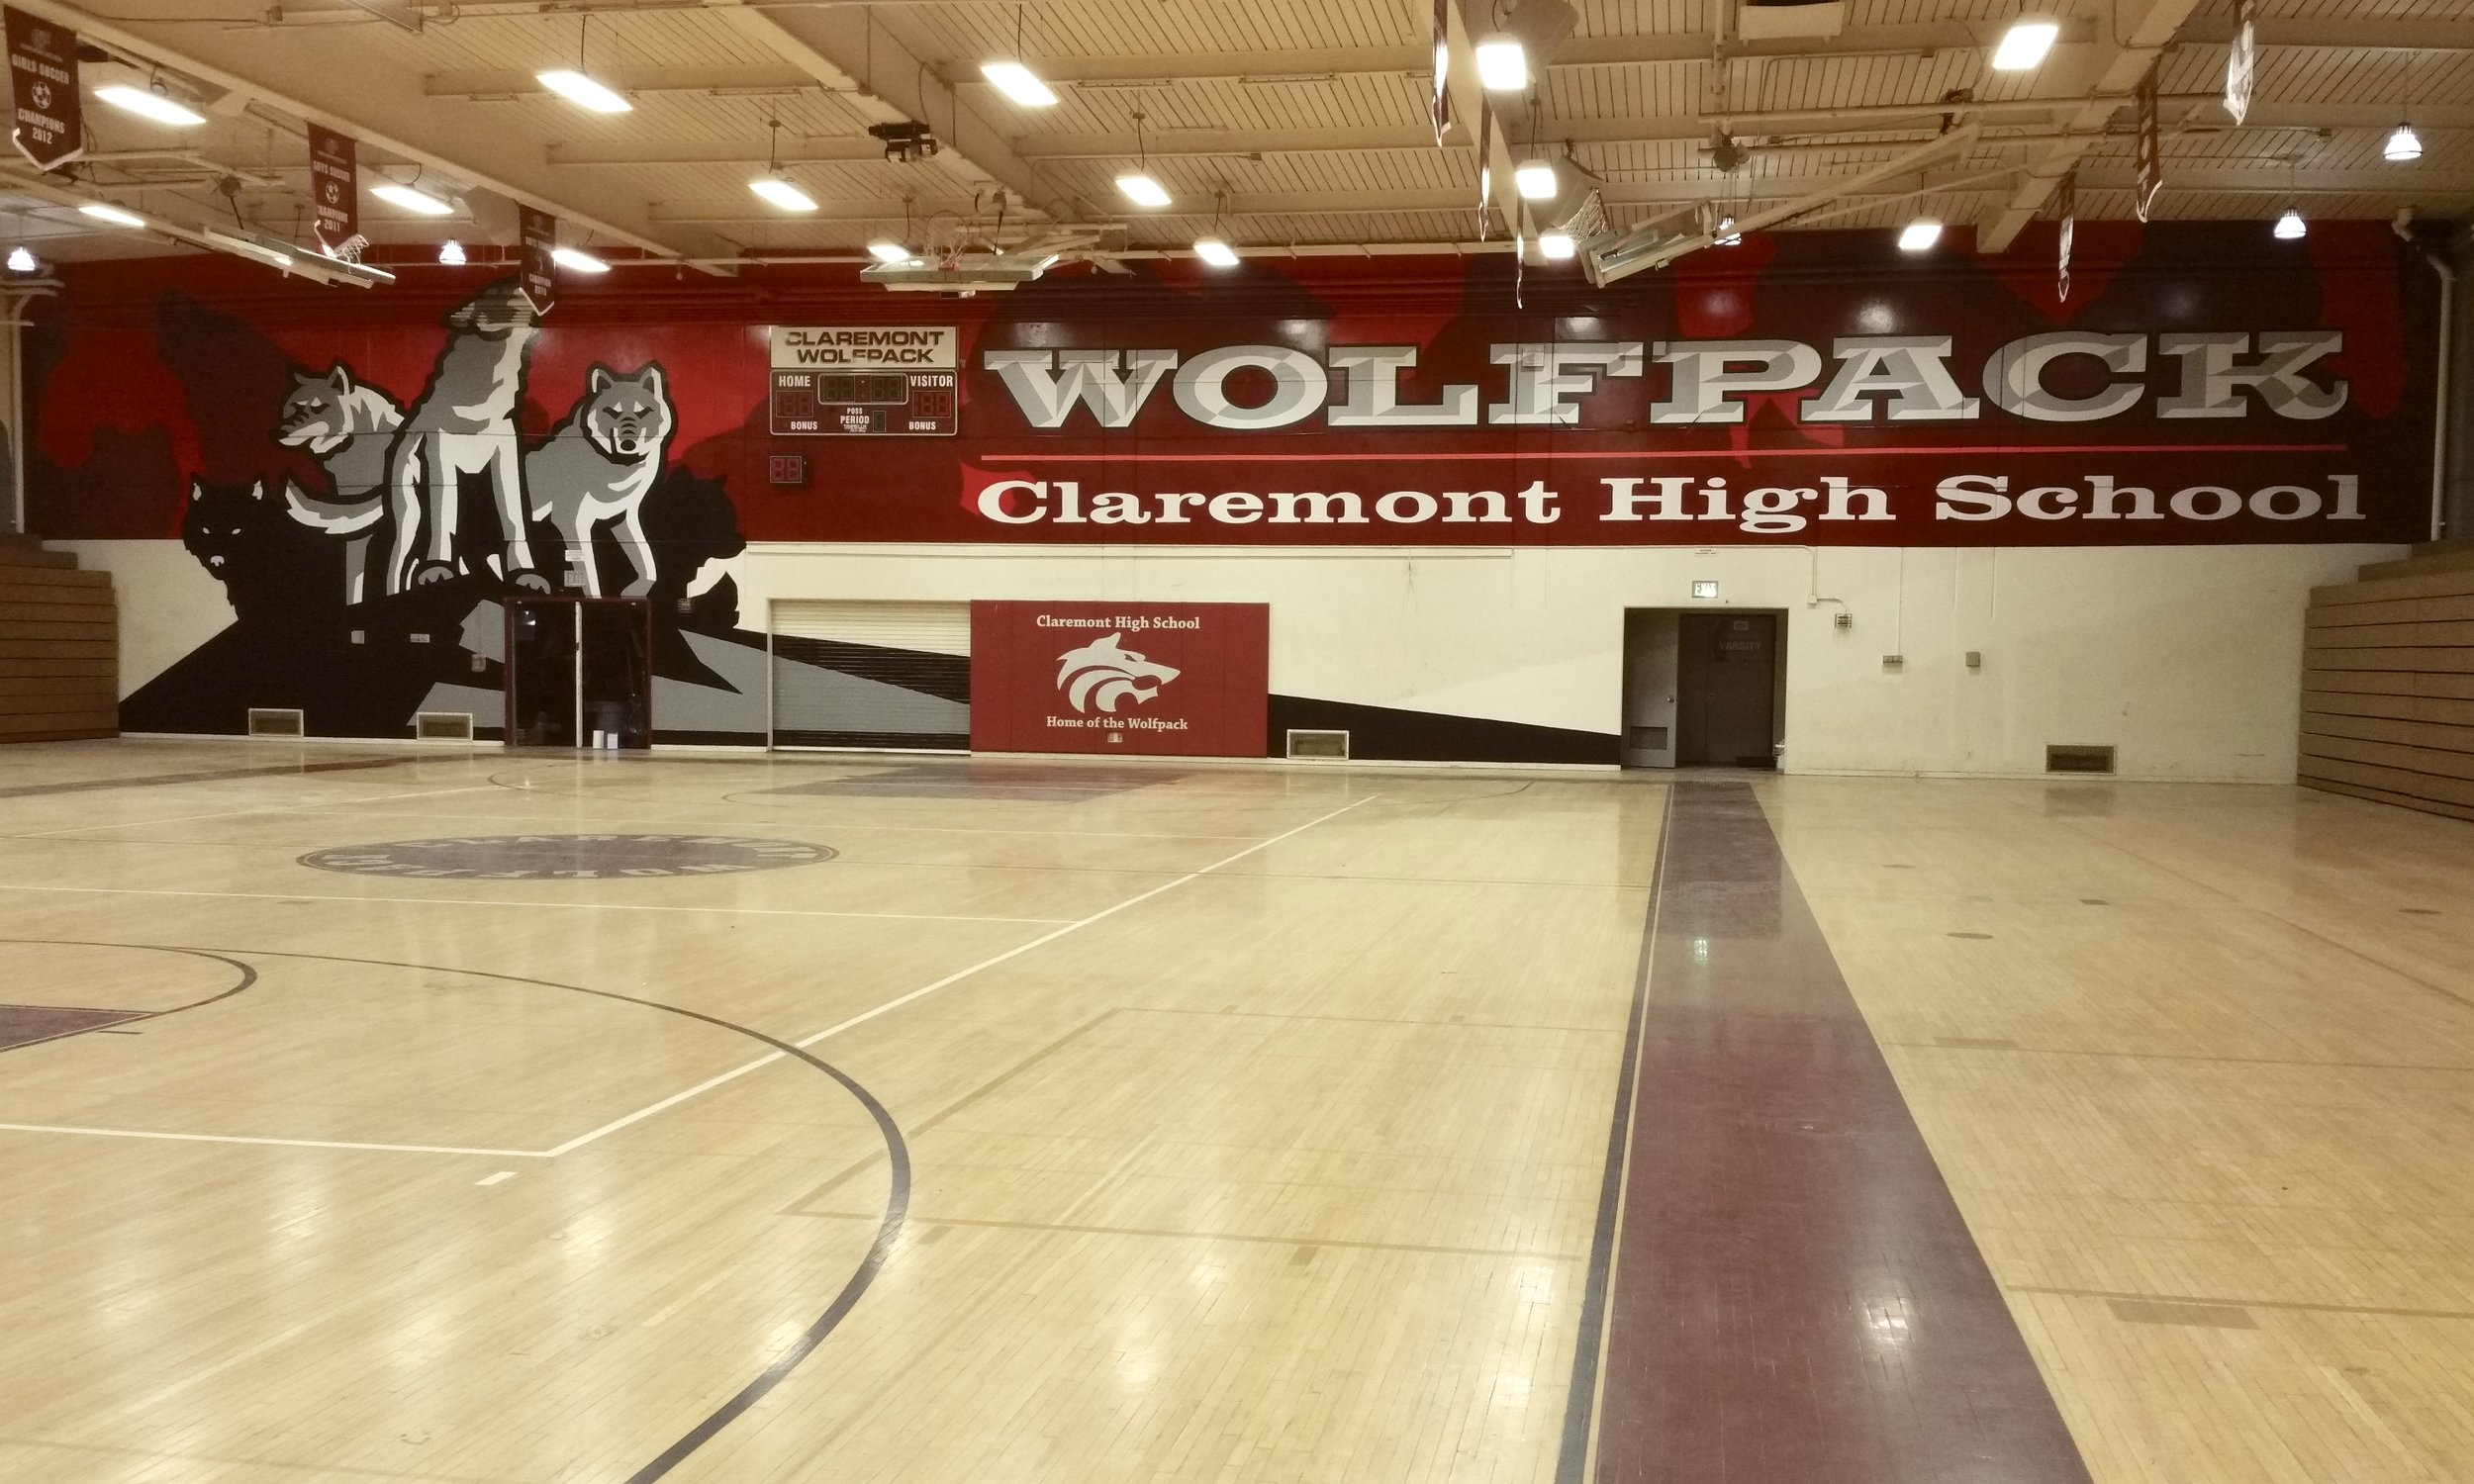 We're your GO-TO source for school spirit murals and graphics! -